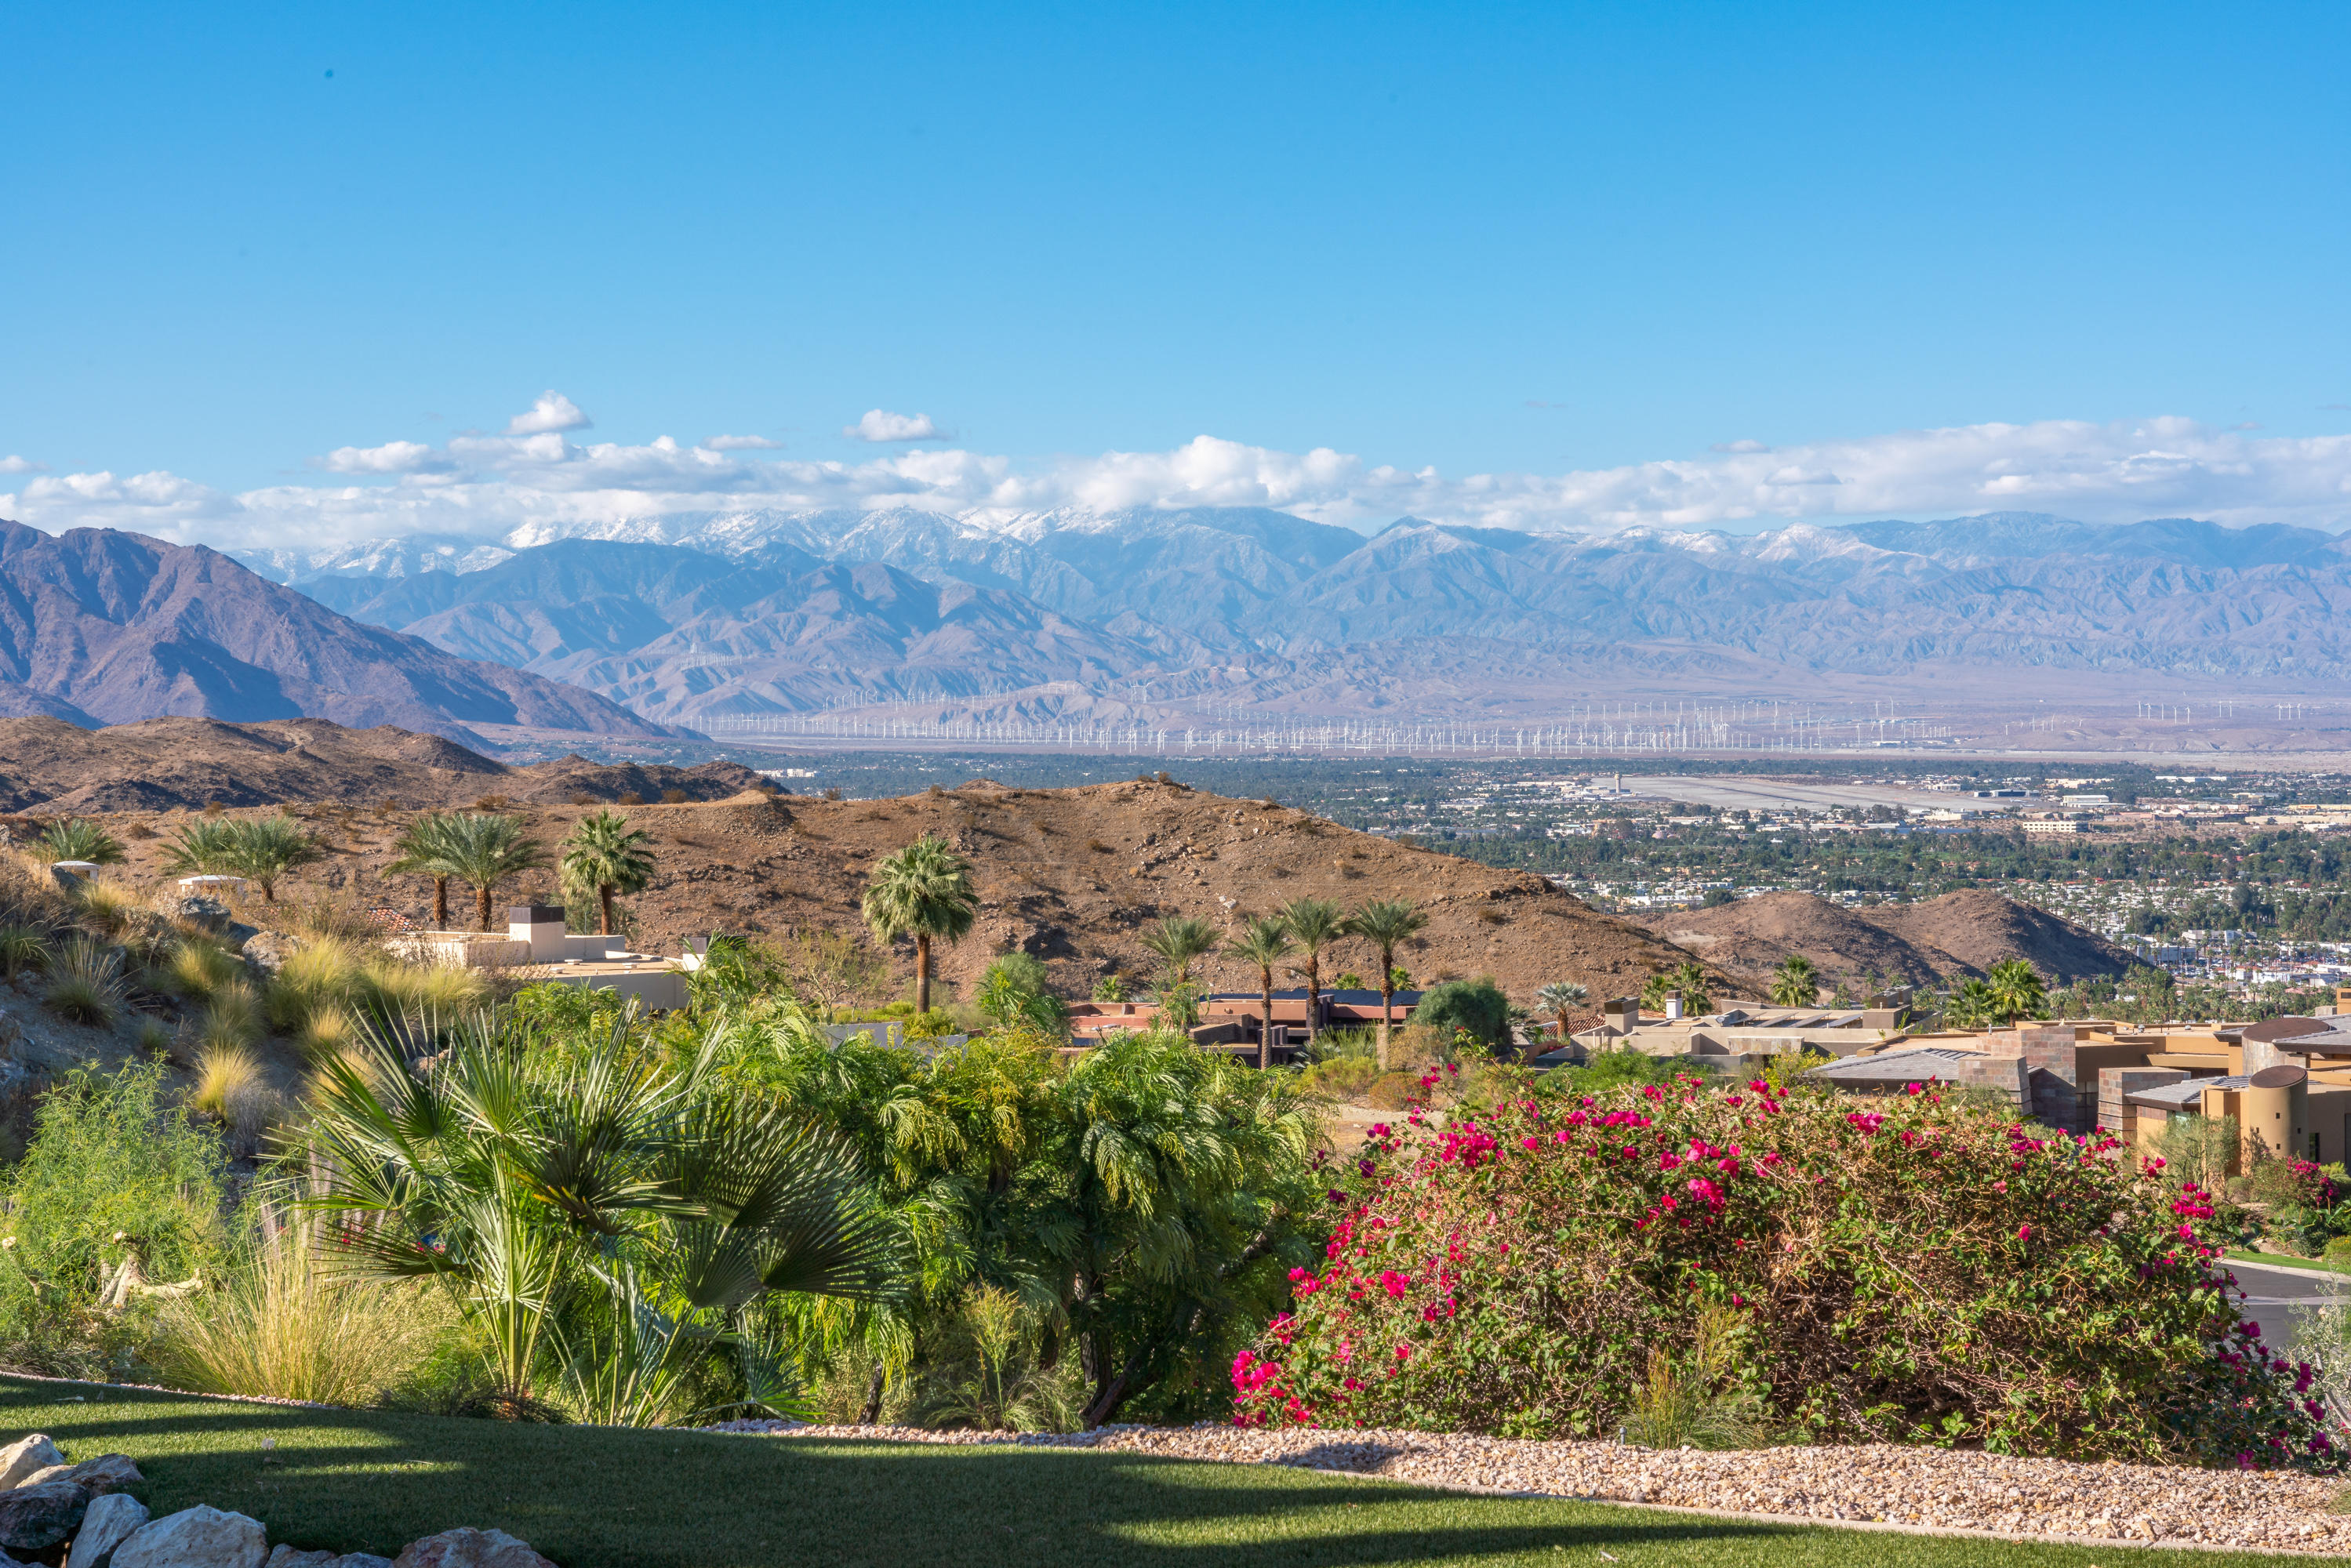 This incredible custom home offers dramatic down valley views, mountain views and ultimate privacy. Located on a corner lot in Mirada Estates, which is on the same hilltop as the world famous Ritz Carlton Hotel in Rancho Mirage. Built by respected developer Richard Pruter, PARR Development, offering the highest in quality construction, design & features. As you enter into the private courtyard, you will find a pool & spa enjoying the southern exposure & mountain views, offering the best in indoor/outdoor living. Once inside the home, massive disappearing walls of glass reveal covered outdoor living areas in both directions, with impressive down valley and mountain views across the Coachella Valley! The Grand Room features a fireplace and a sit down wet bar with a temperature controlled wine room. The gourmet kitchen includes a center island, top quality appliances, plus a butlers kitchen perfect for entertainment prep. The luxurious master suite offers views, a fireplace, his & hers baths & closets, a 2nd laundry and an exercise room. The Guest Casita is a suite with a sitting room and a kitchenette. A separate office with built-ins with double doors opening to the outside. There is a 3-car garage with air conditioning and plenty of storage space. This home is in perfect condition and move-in ready! Furnishings are included, with few exclusions. Homeowners enjoy amenities at the 5-Star Ritz Carlton Hotel.